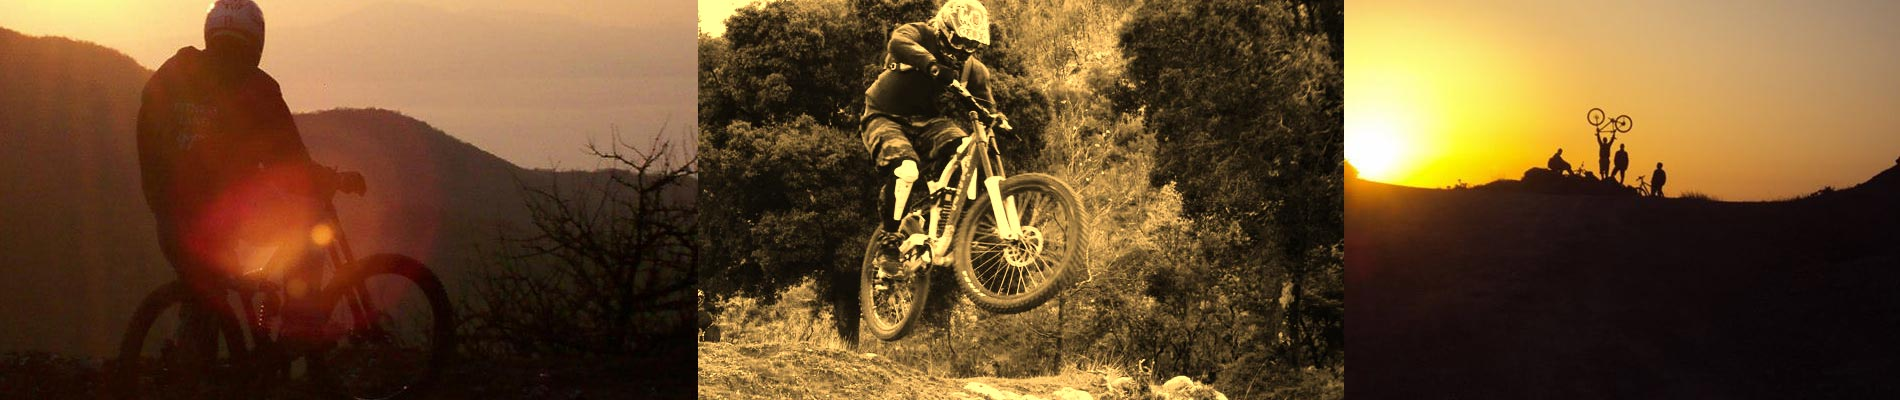 Freeride - Downhill